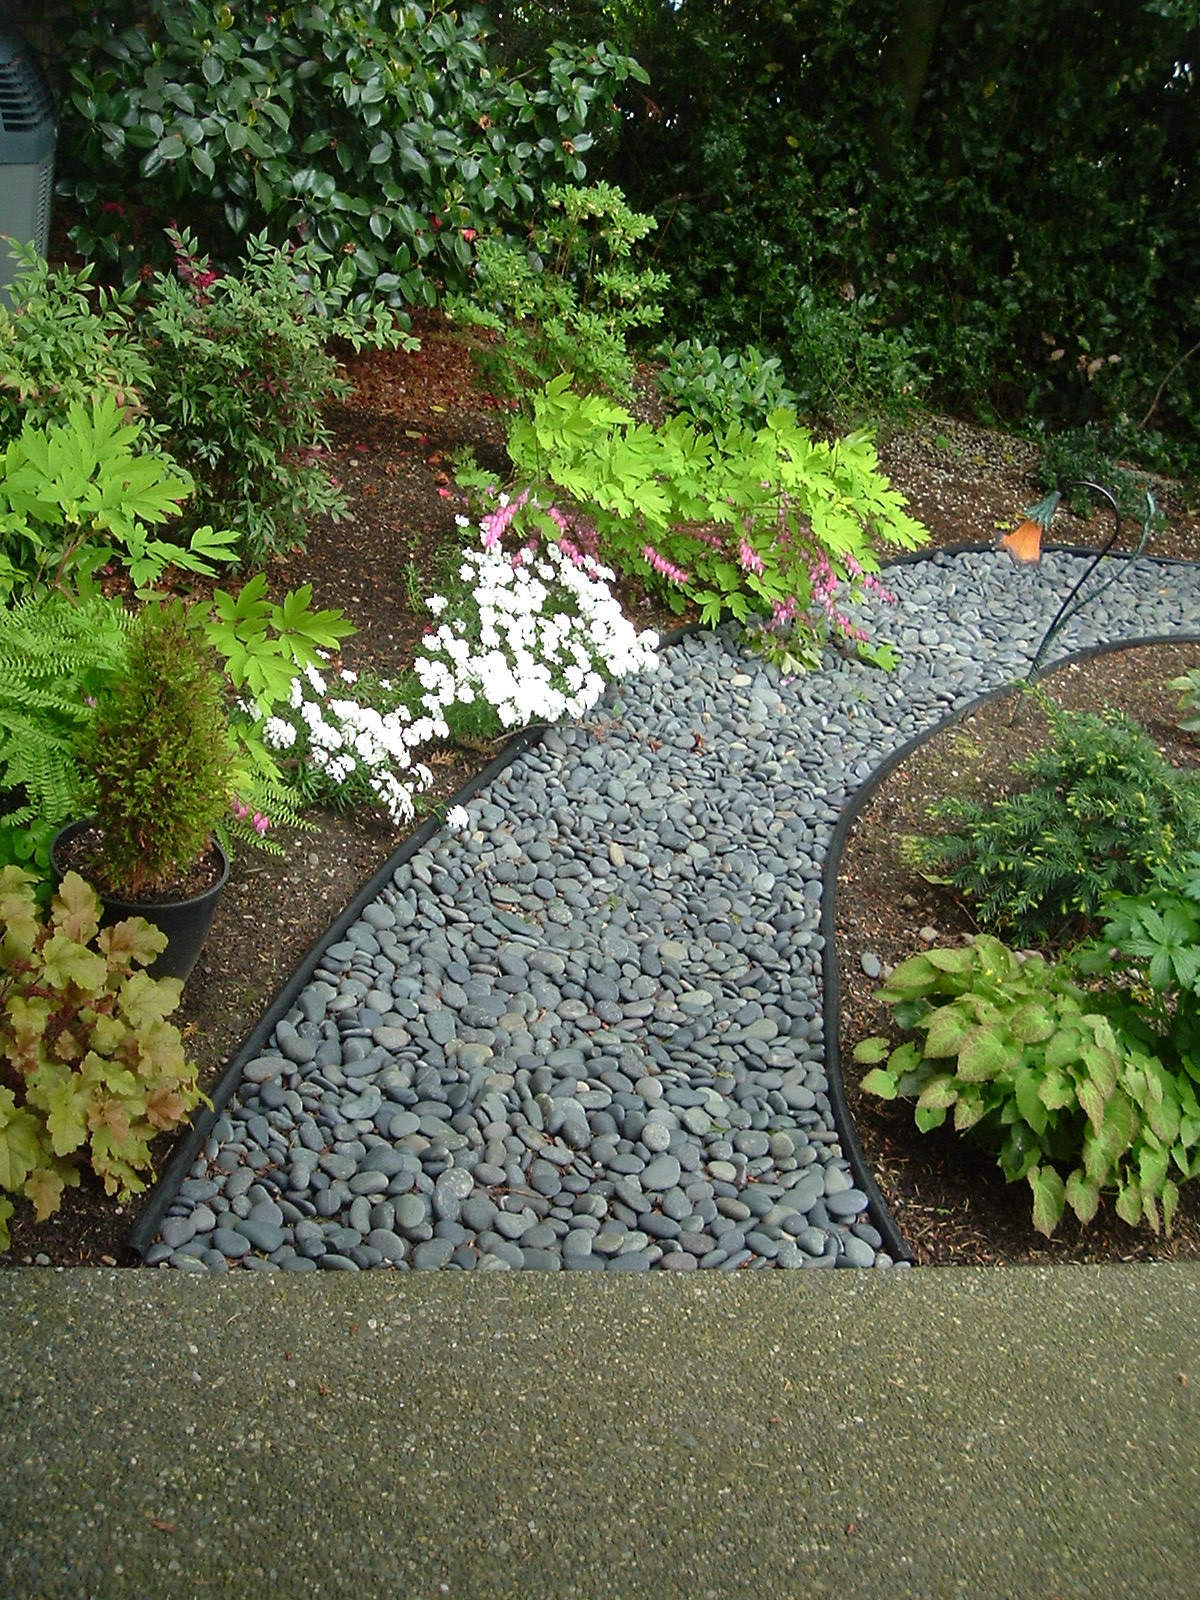 Decorative stone path